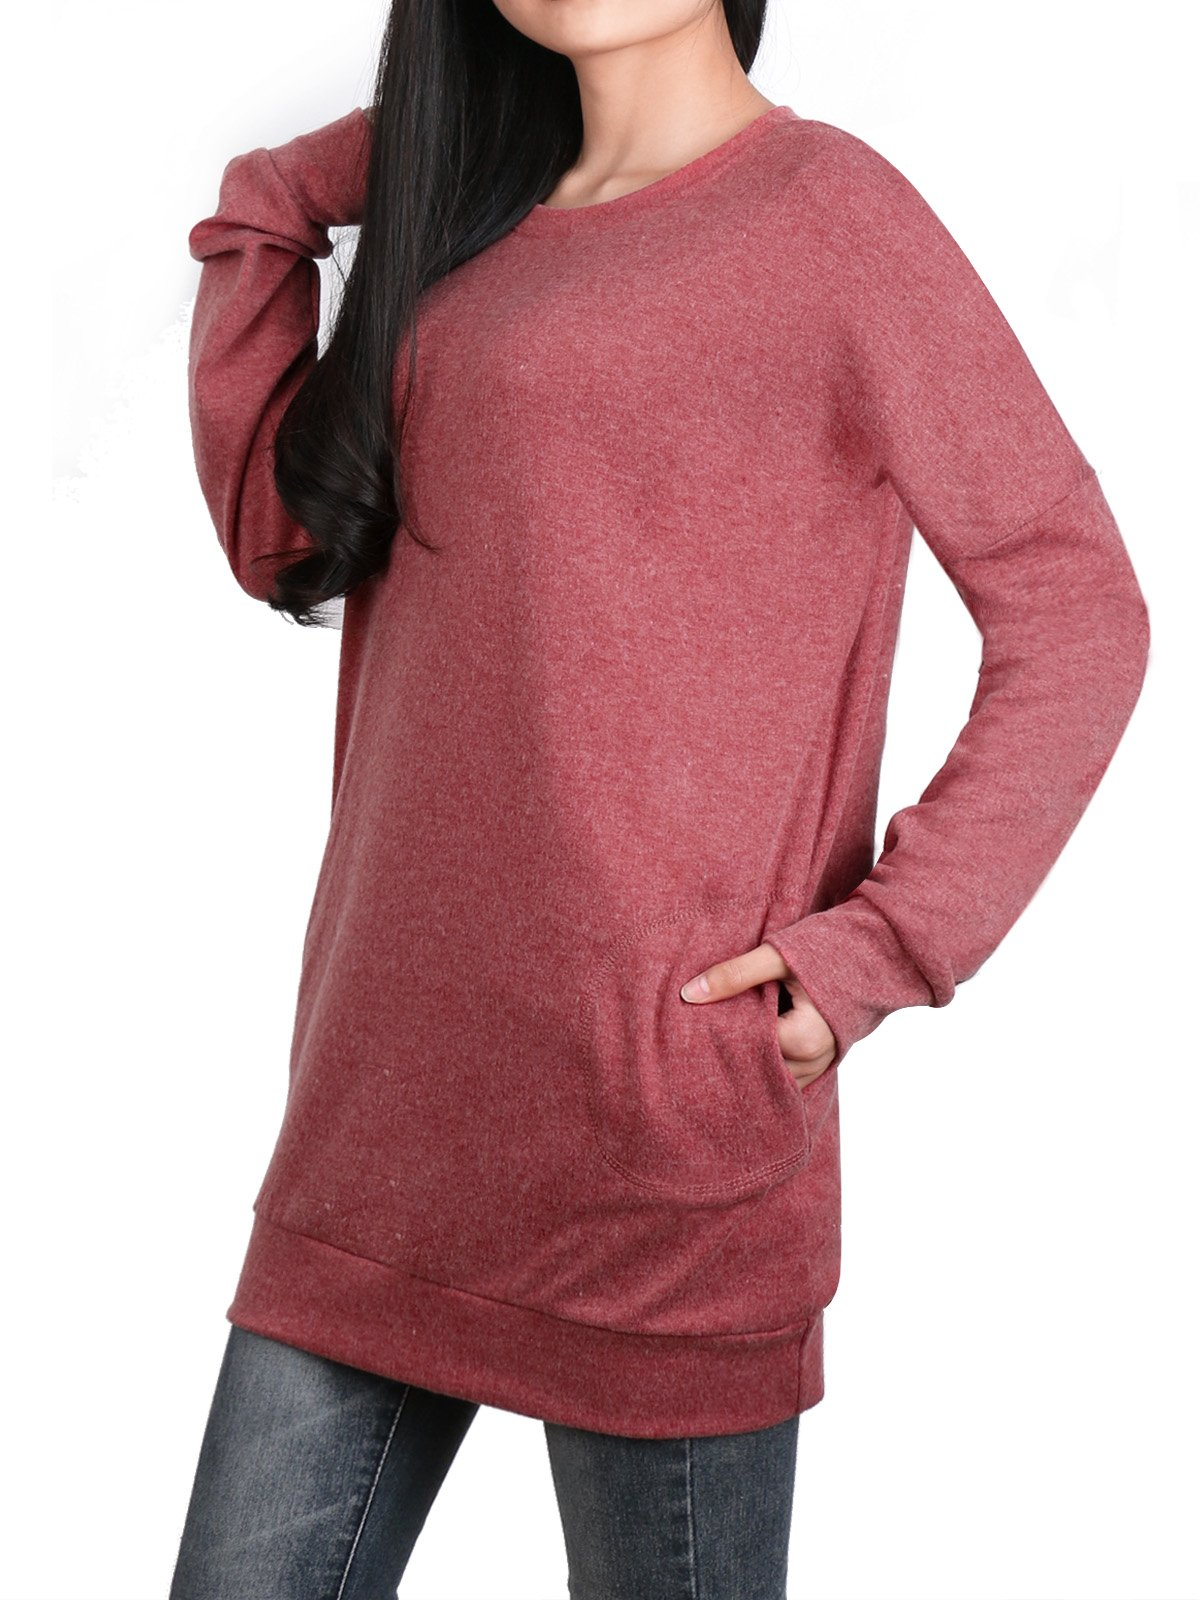 Anna Smith Cute Sweatshirts for Women, Work Clothing Ladies Long Sleeve Sweater Casual Plain Simple Designer Long Tunic Tops Rounded Collar Loose Pullover with Pockets Brownberry Dusty Pink XL